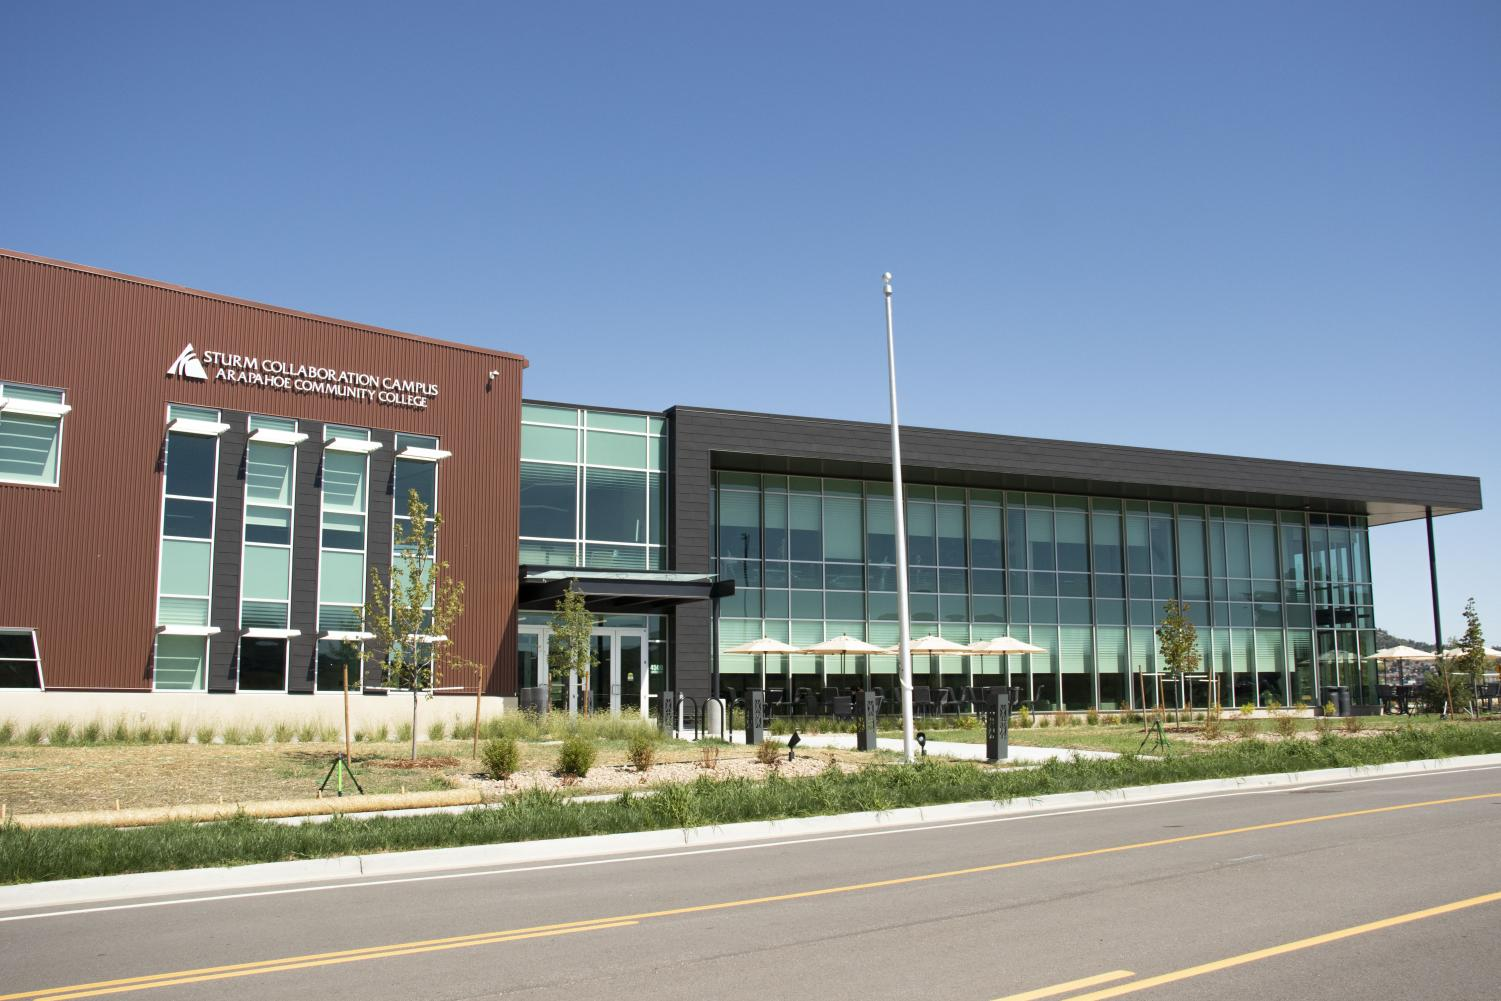 Sturm Collaboration Campus in Castle Rock on Friday, Sep 13, 2019. This new collaboration campus opened this semester.